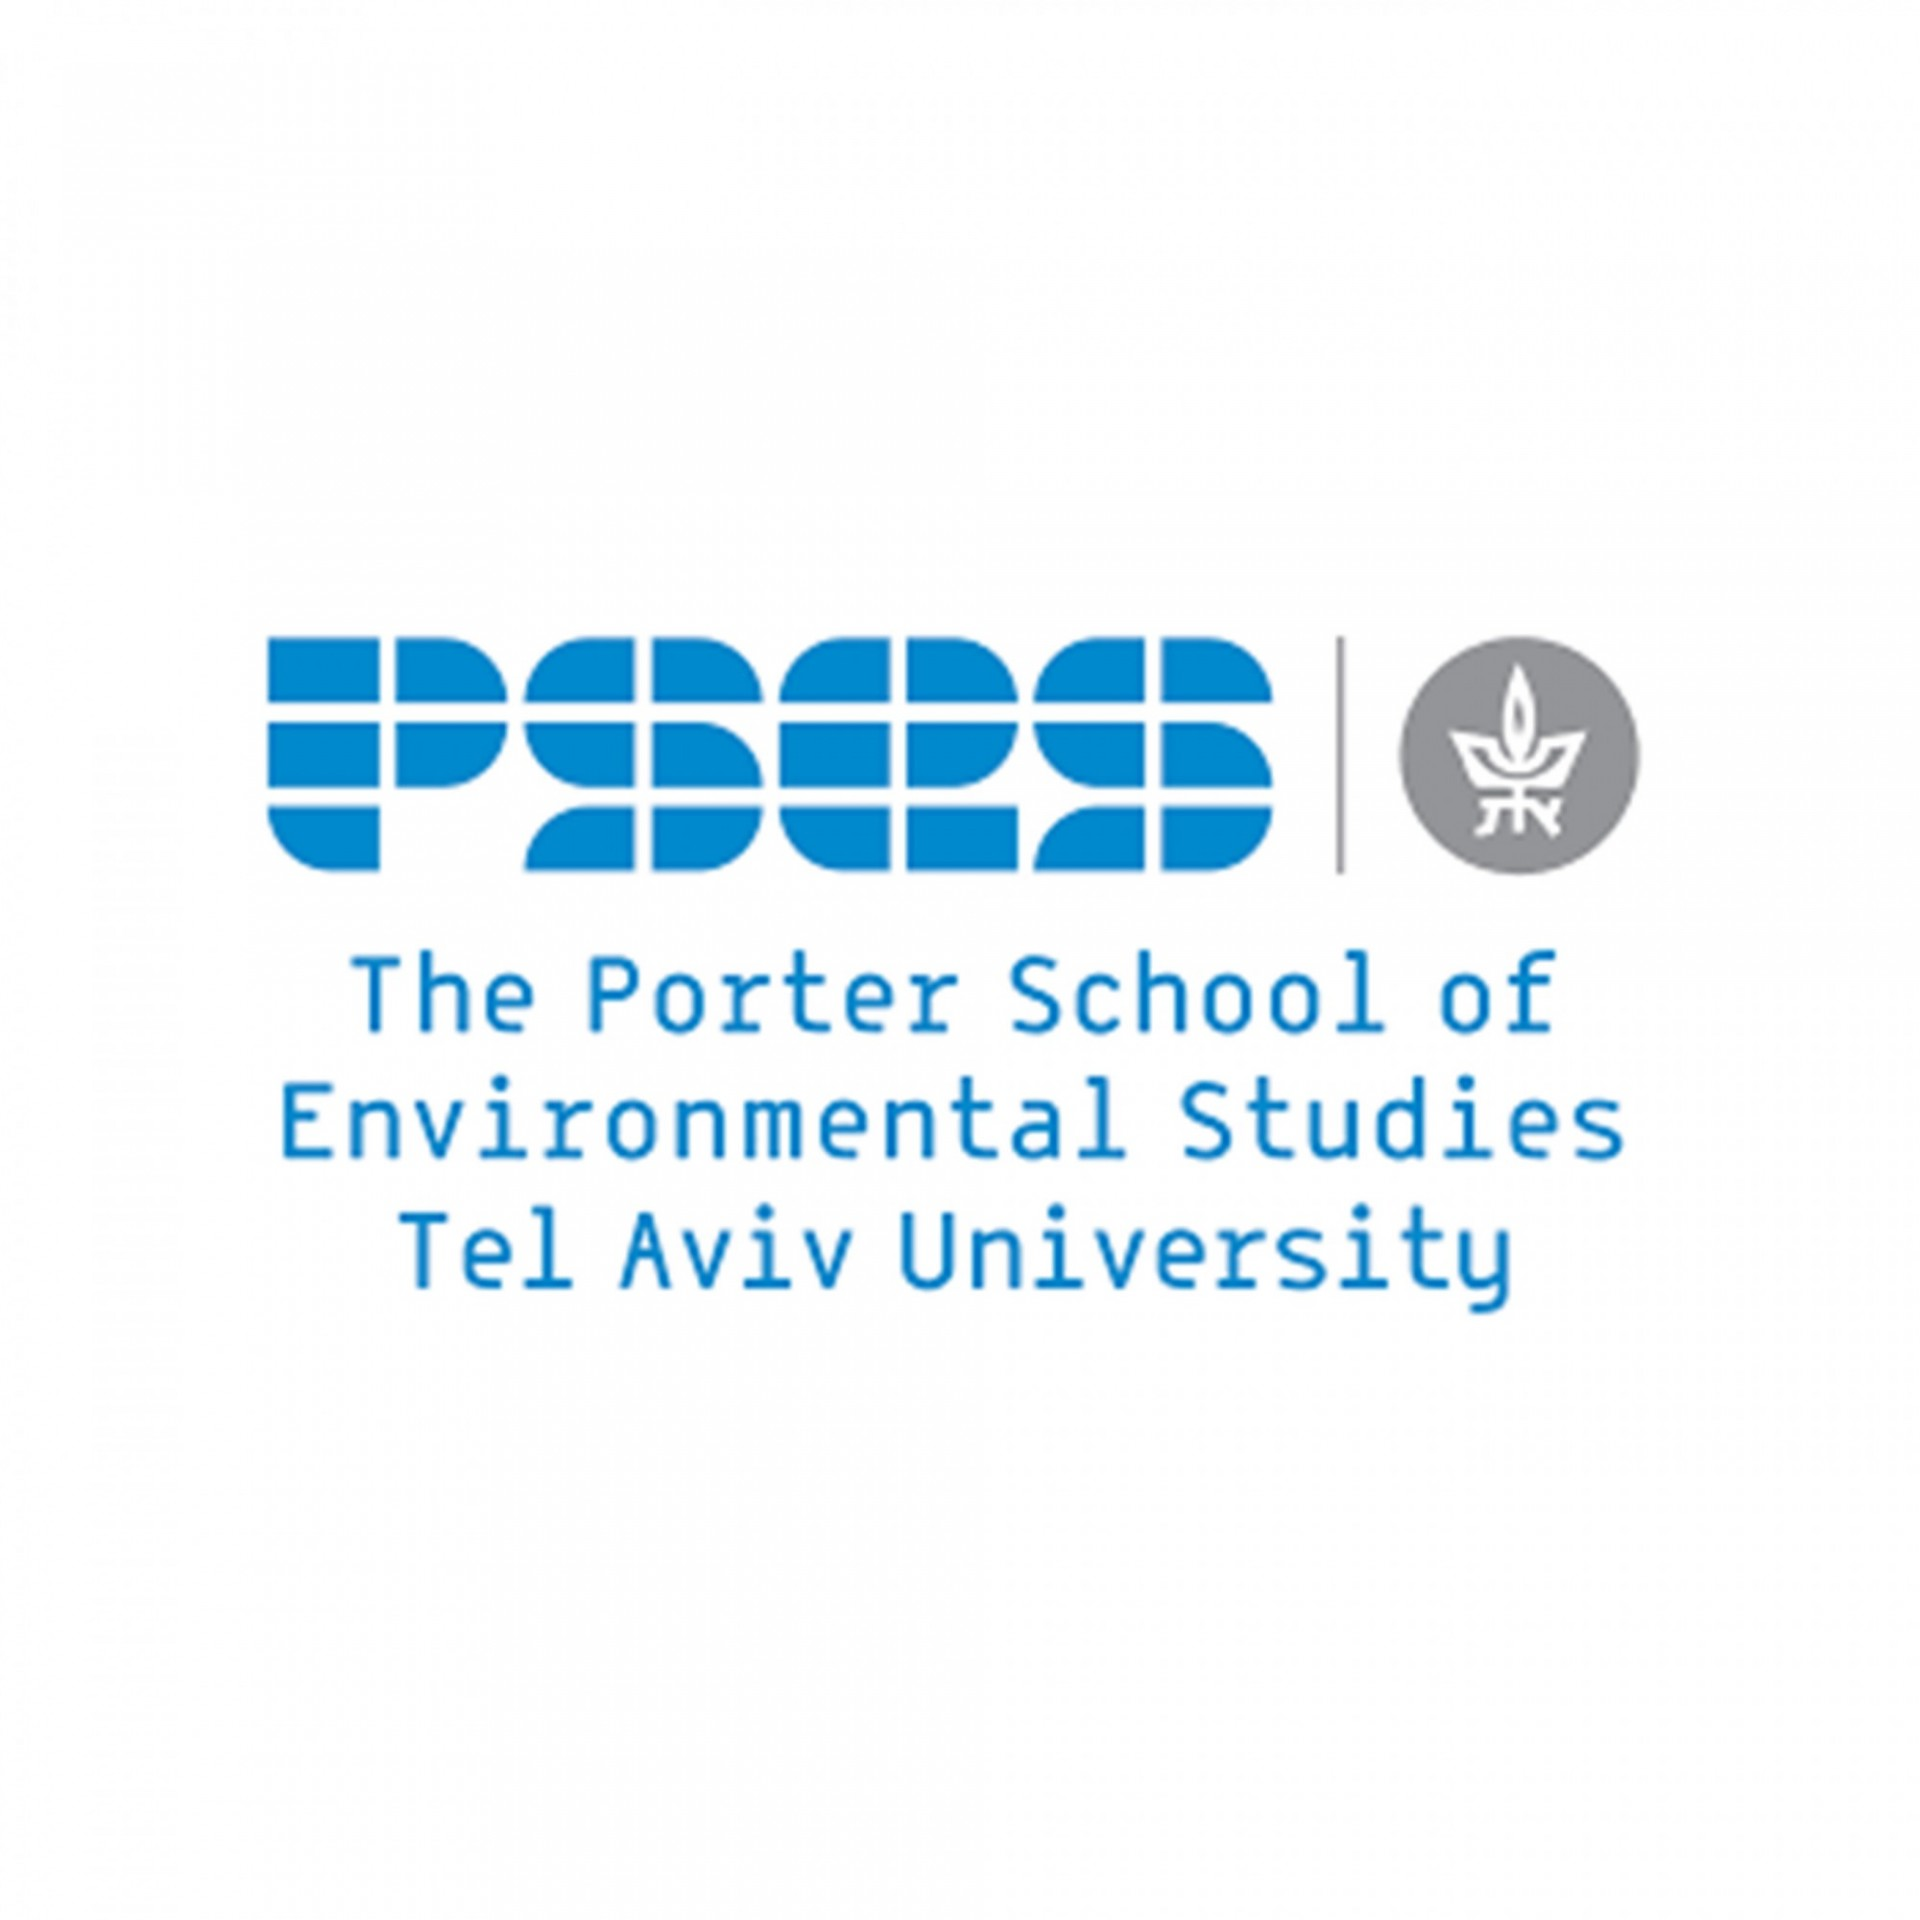 The Porter School of Environmental Studies at Tel Aviv University